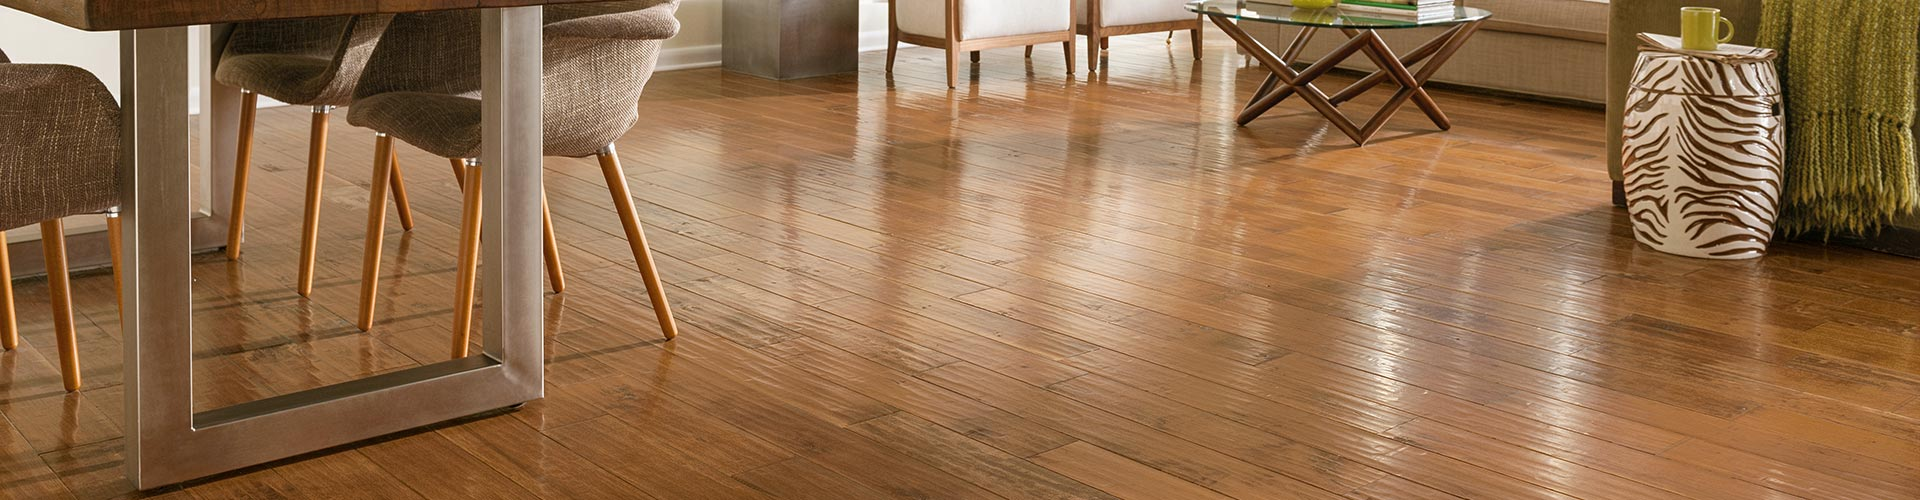 Solid Wood Flooring Carpet Installation Ceramic Tile